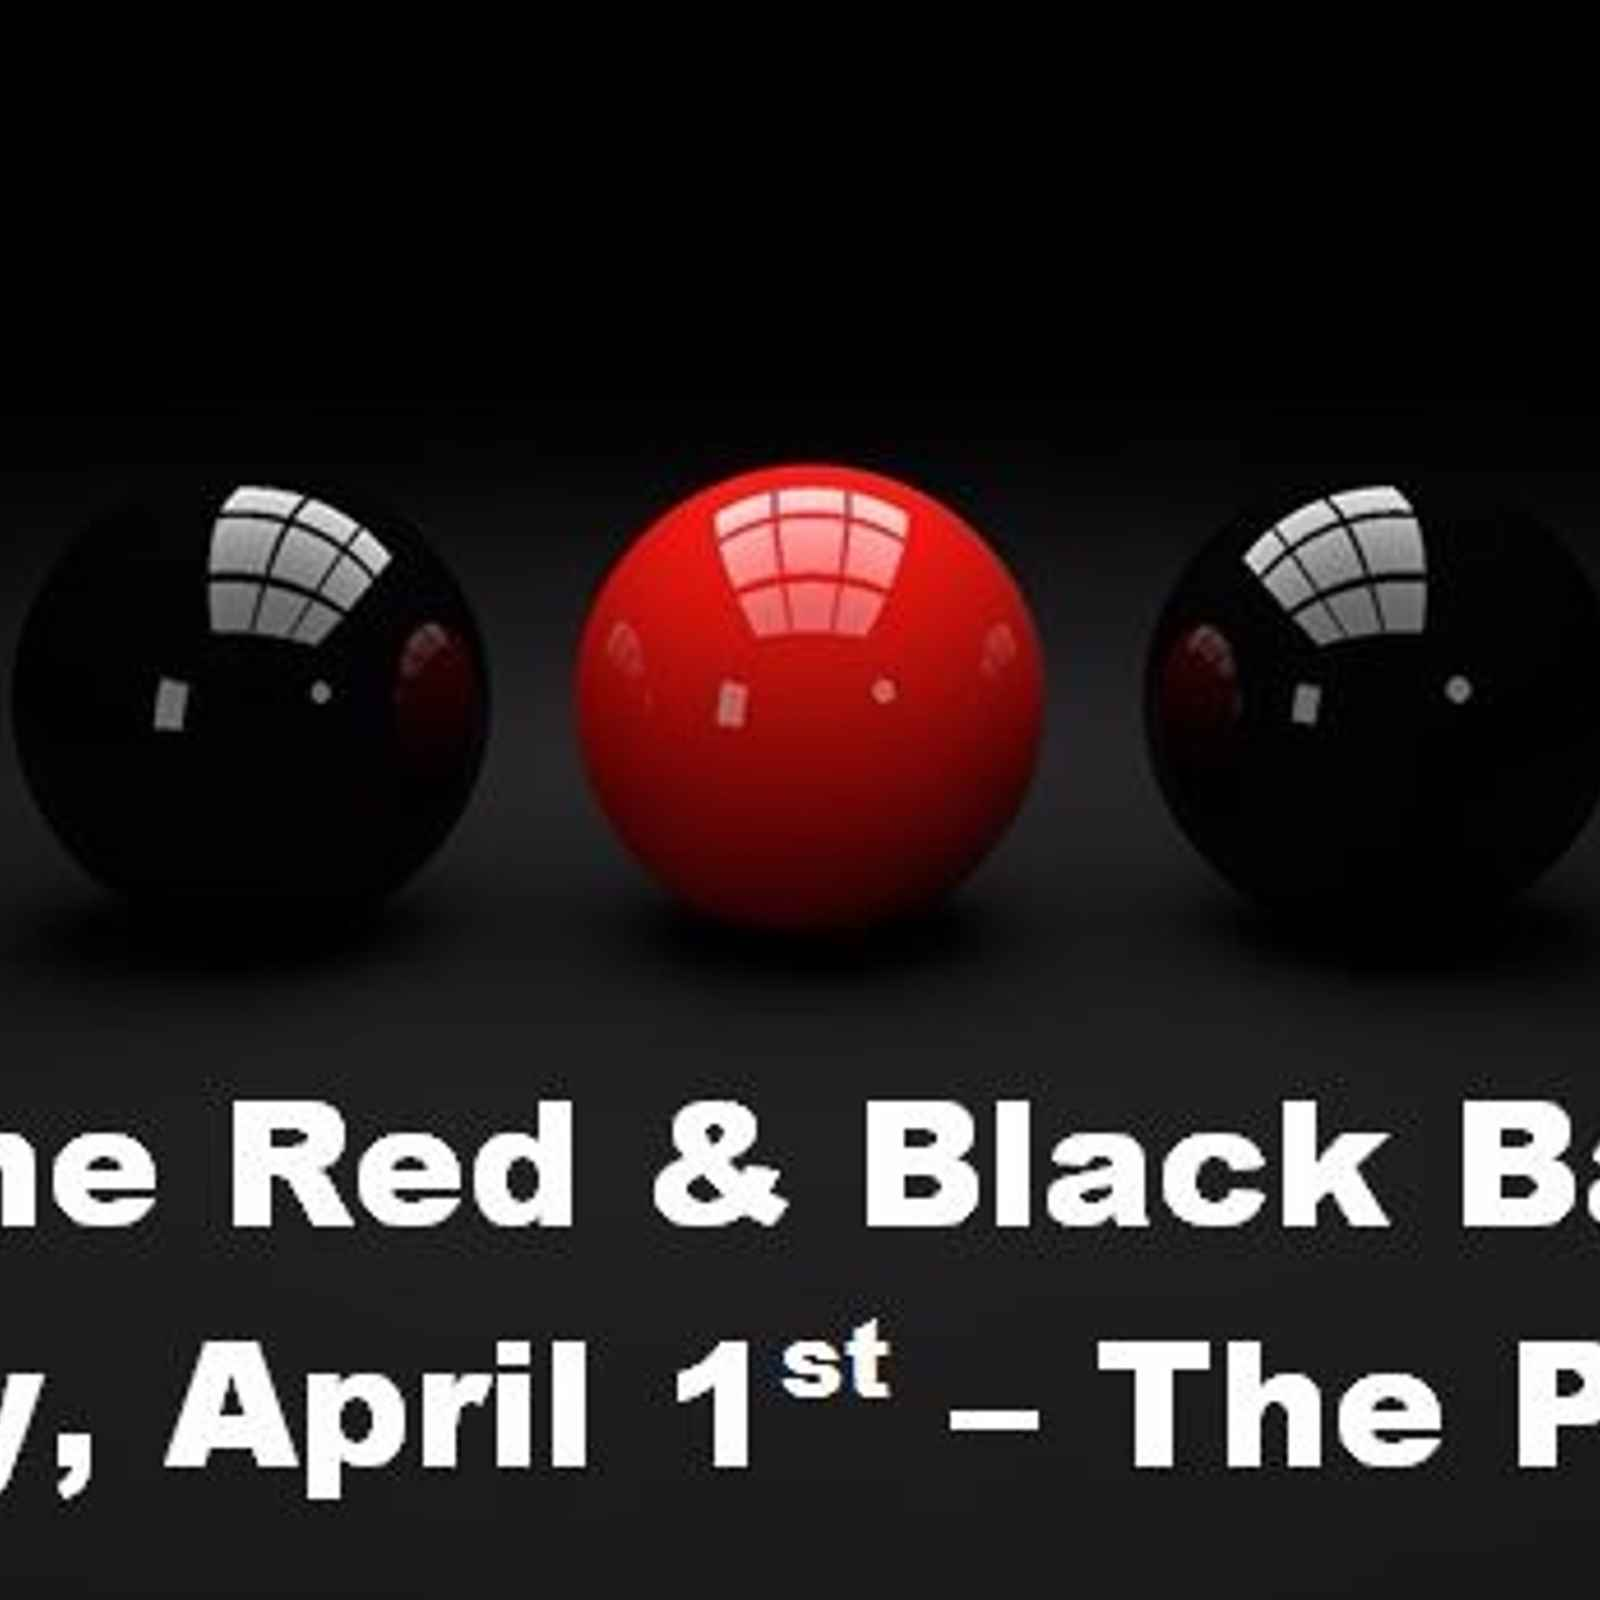 2016 Red & Black Ball - Friday, April 1st